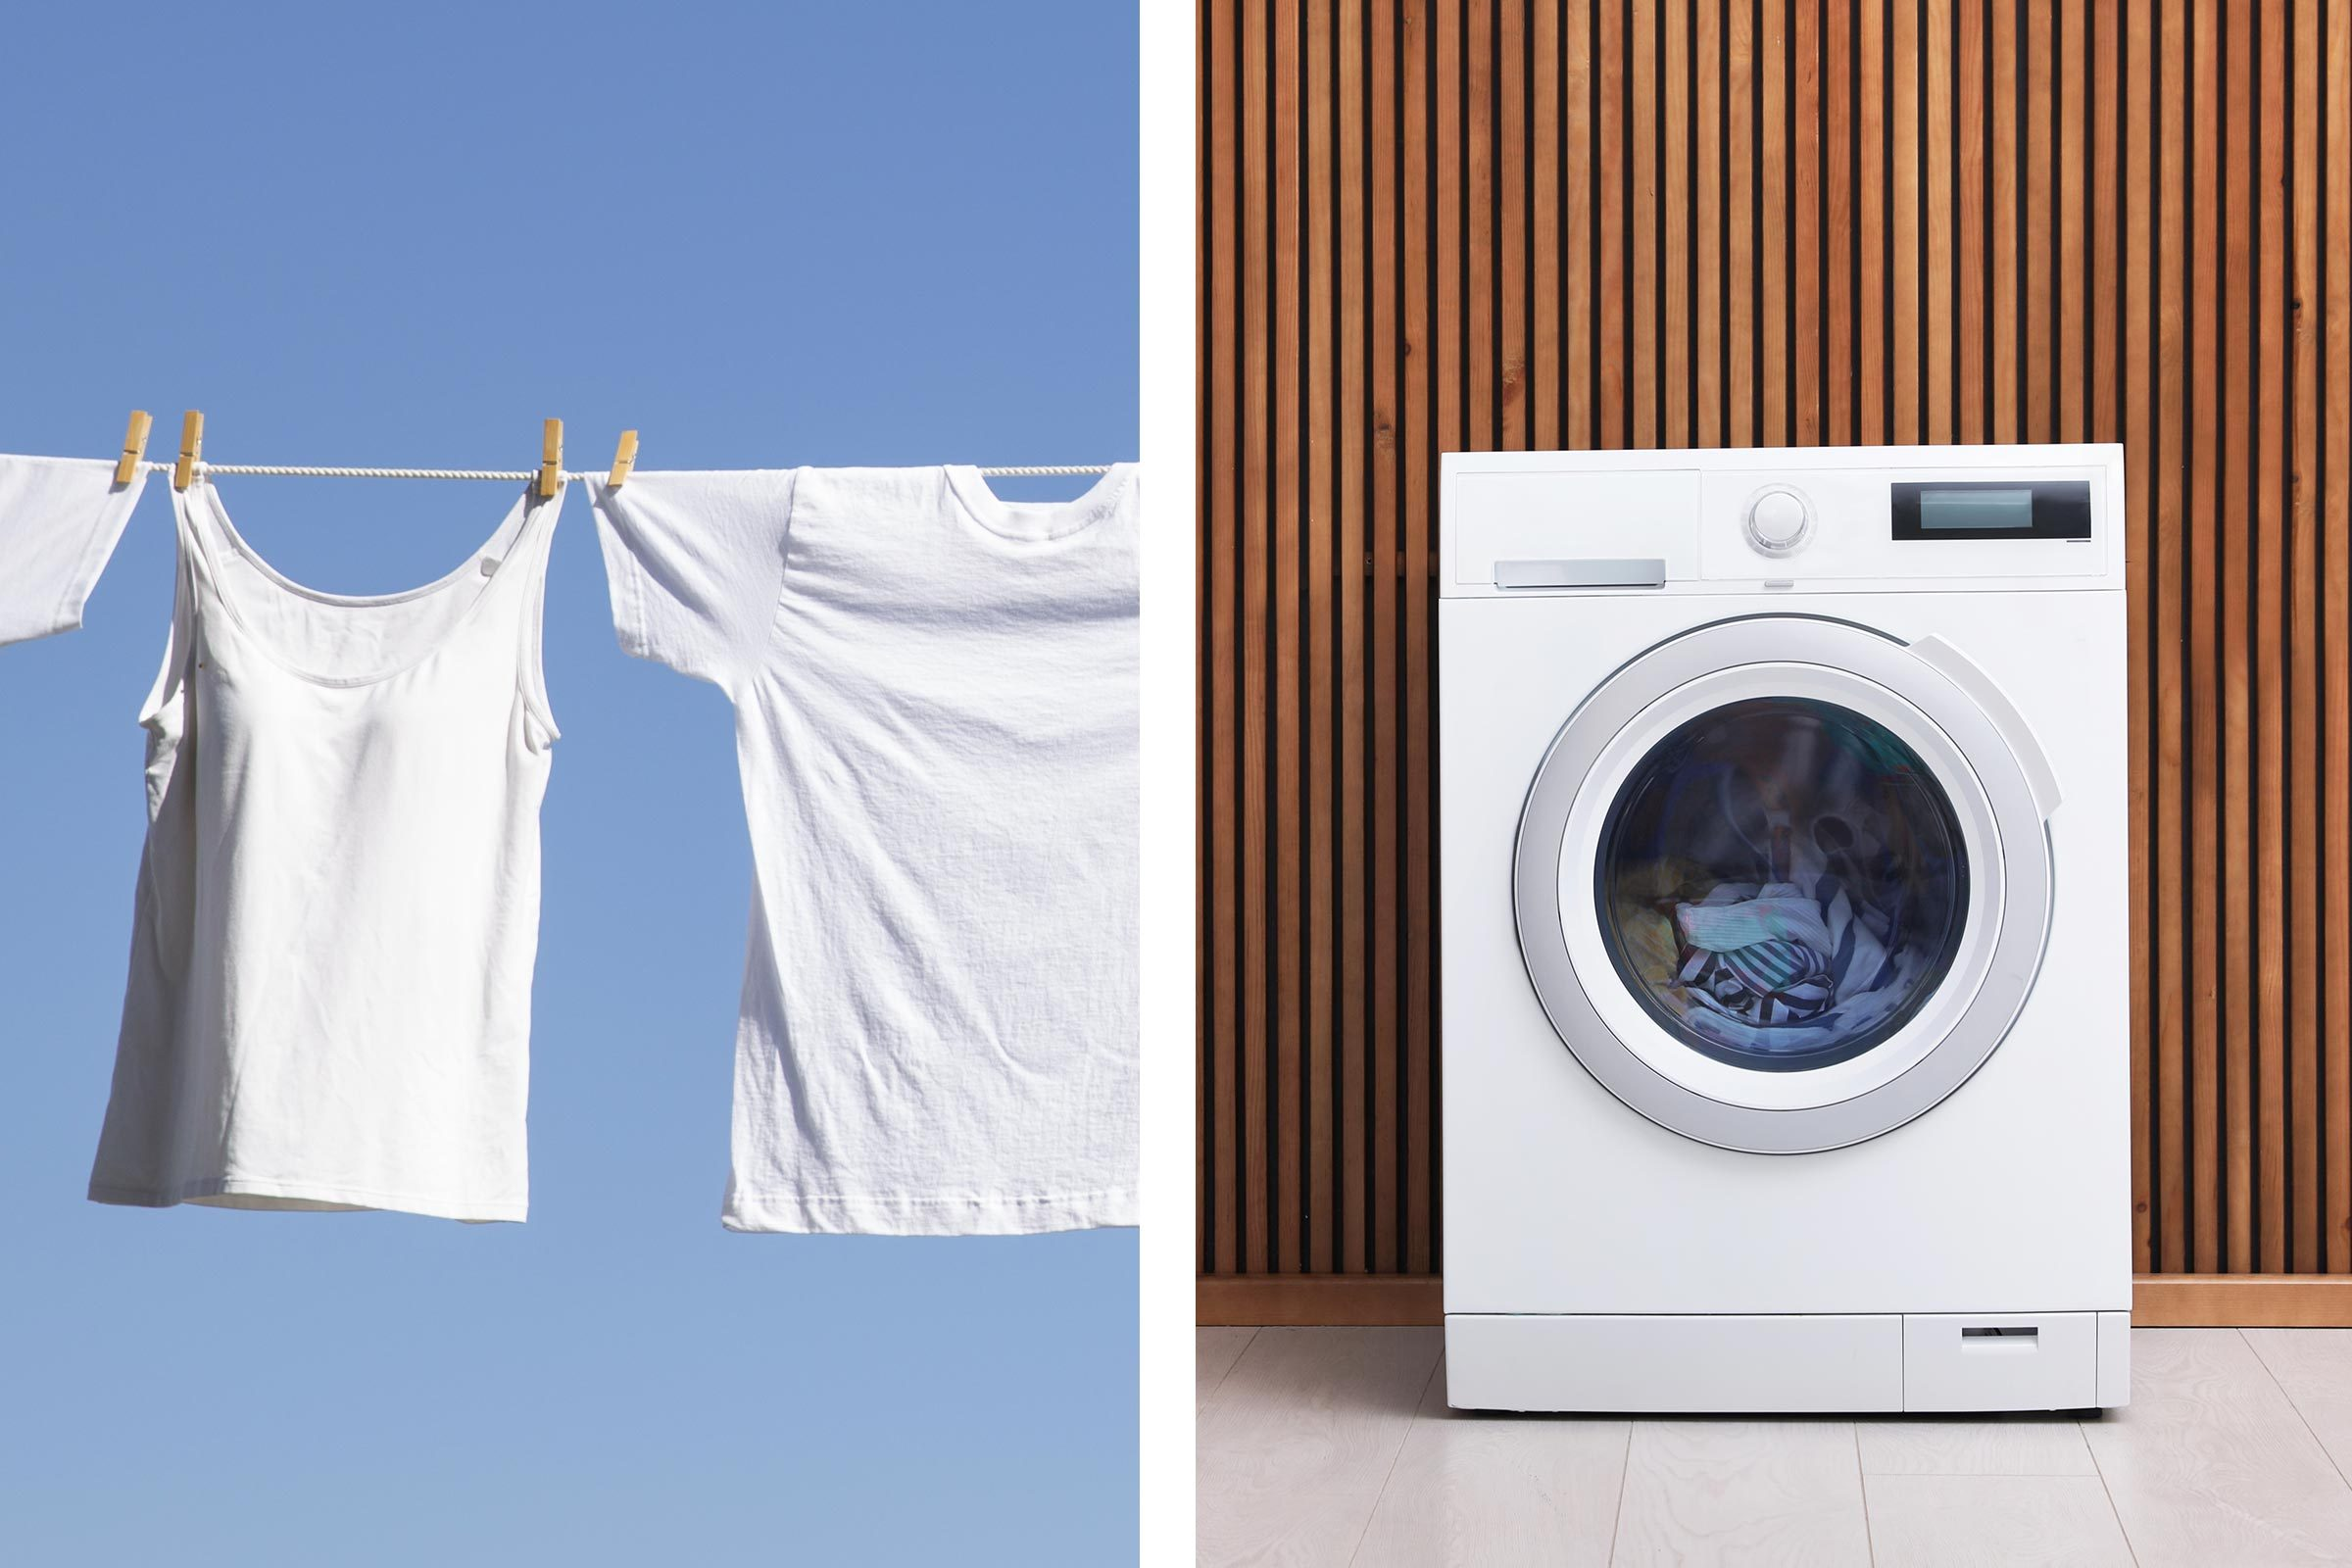 Ditch the Dryer for a More Sustainable 2020